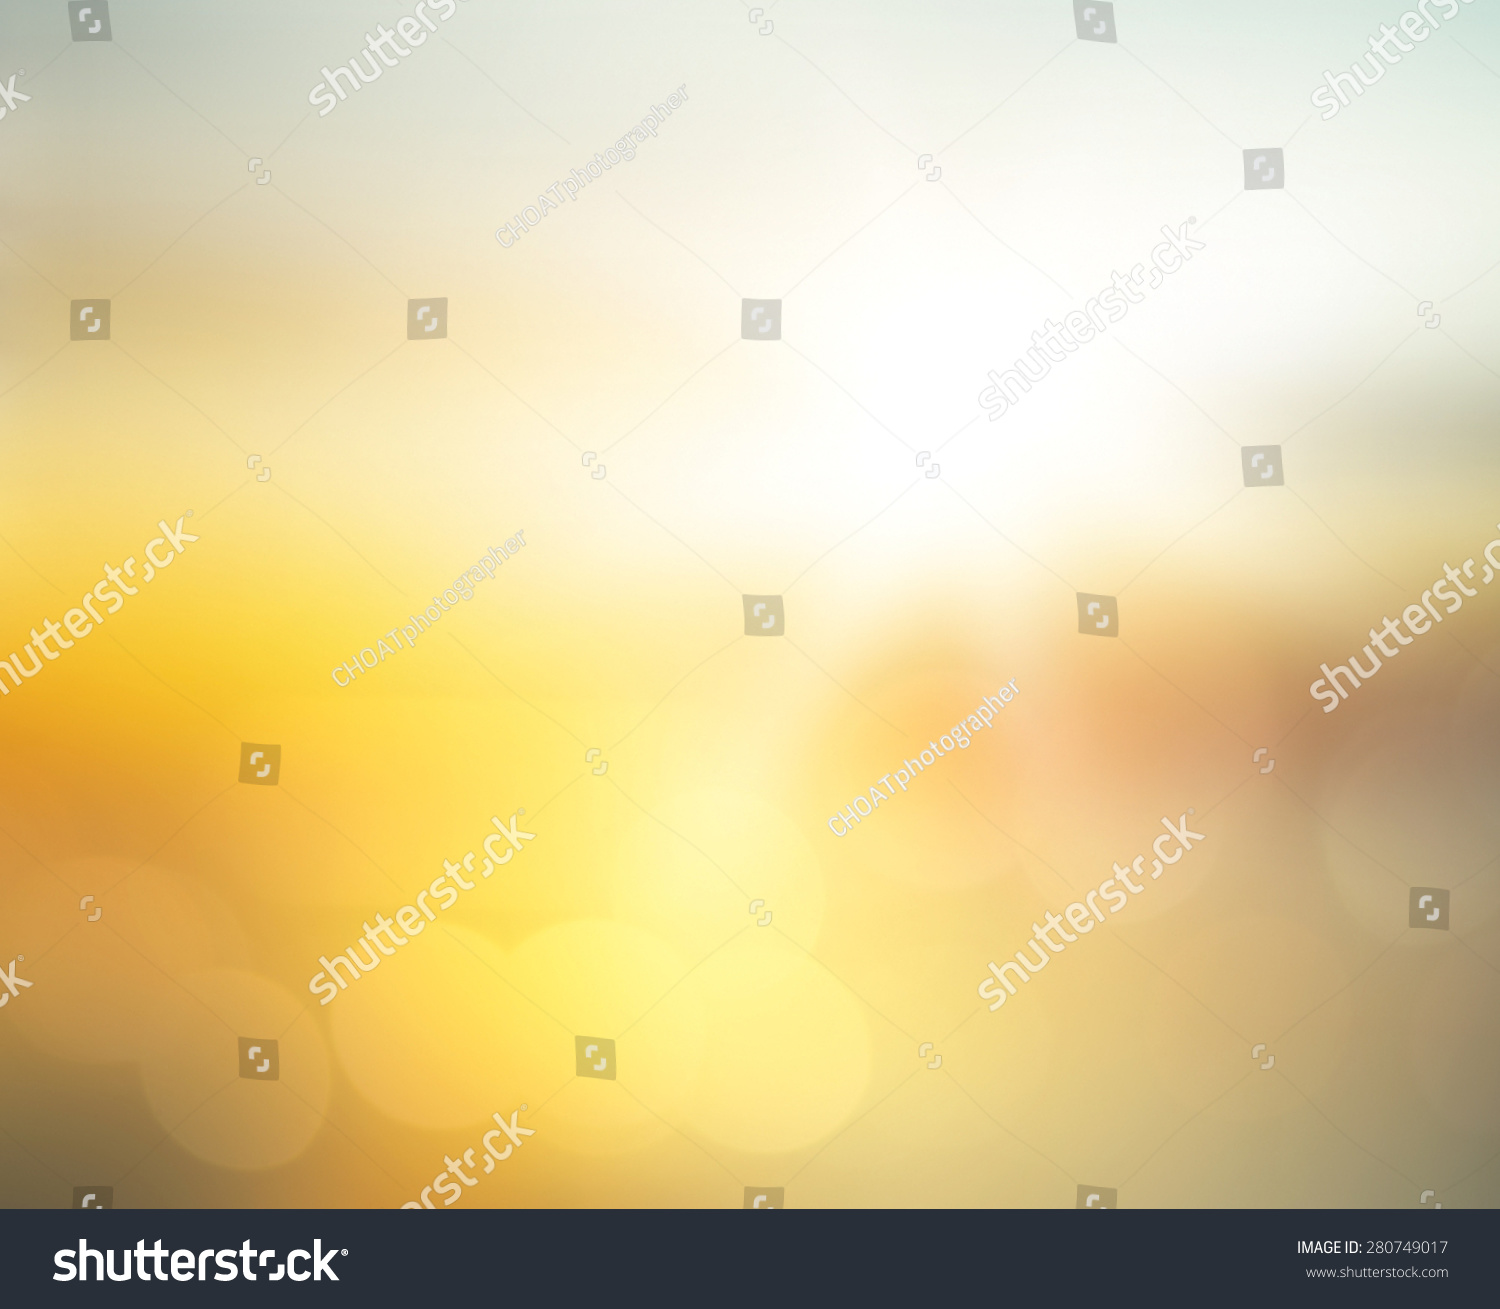 Summer holiday concept: sun light and abstract blur yellow morning sunrise beach background. #280749017